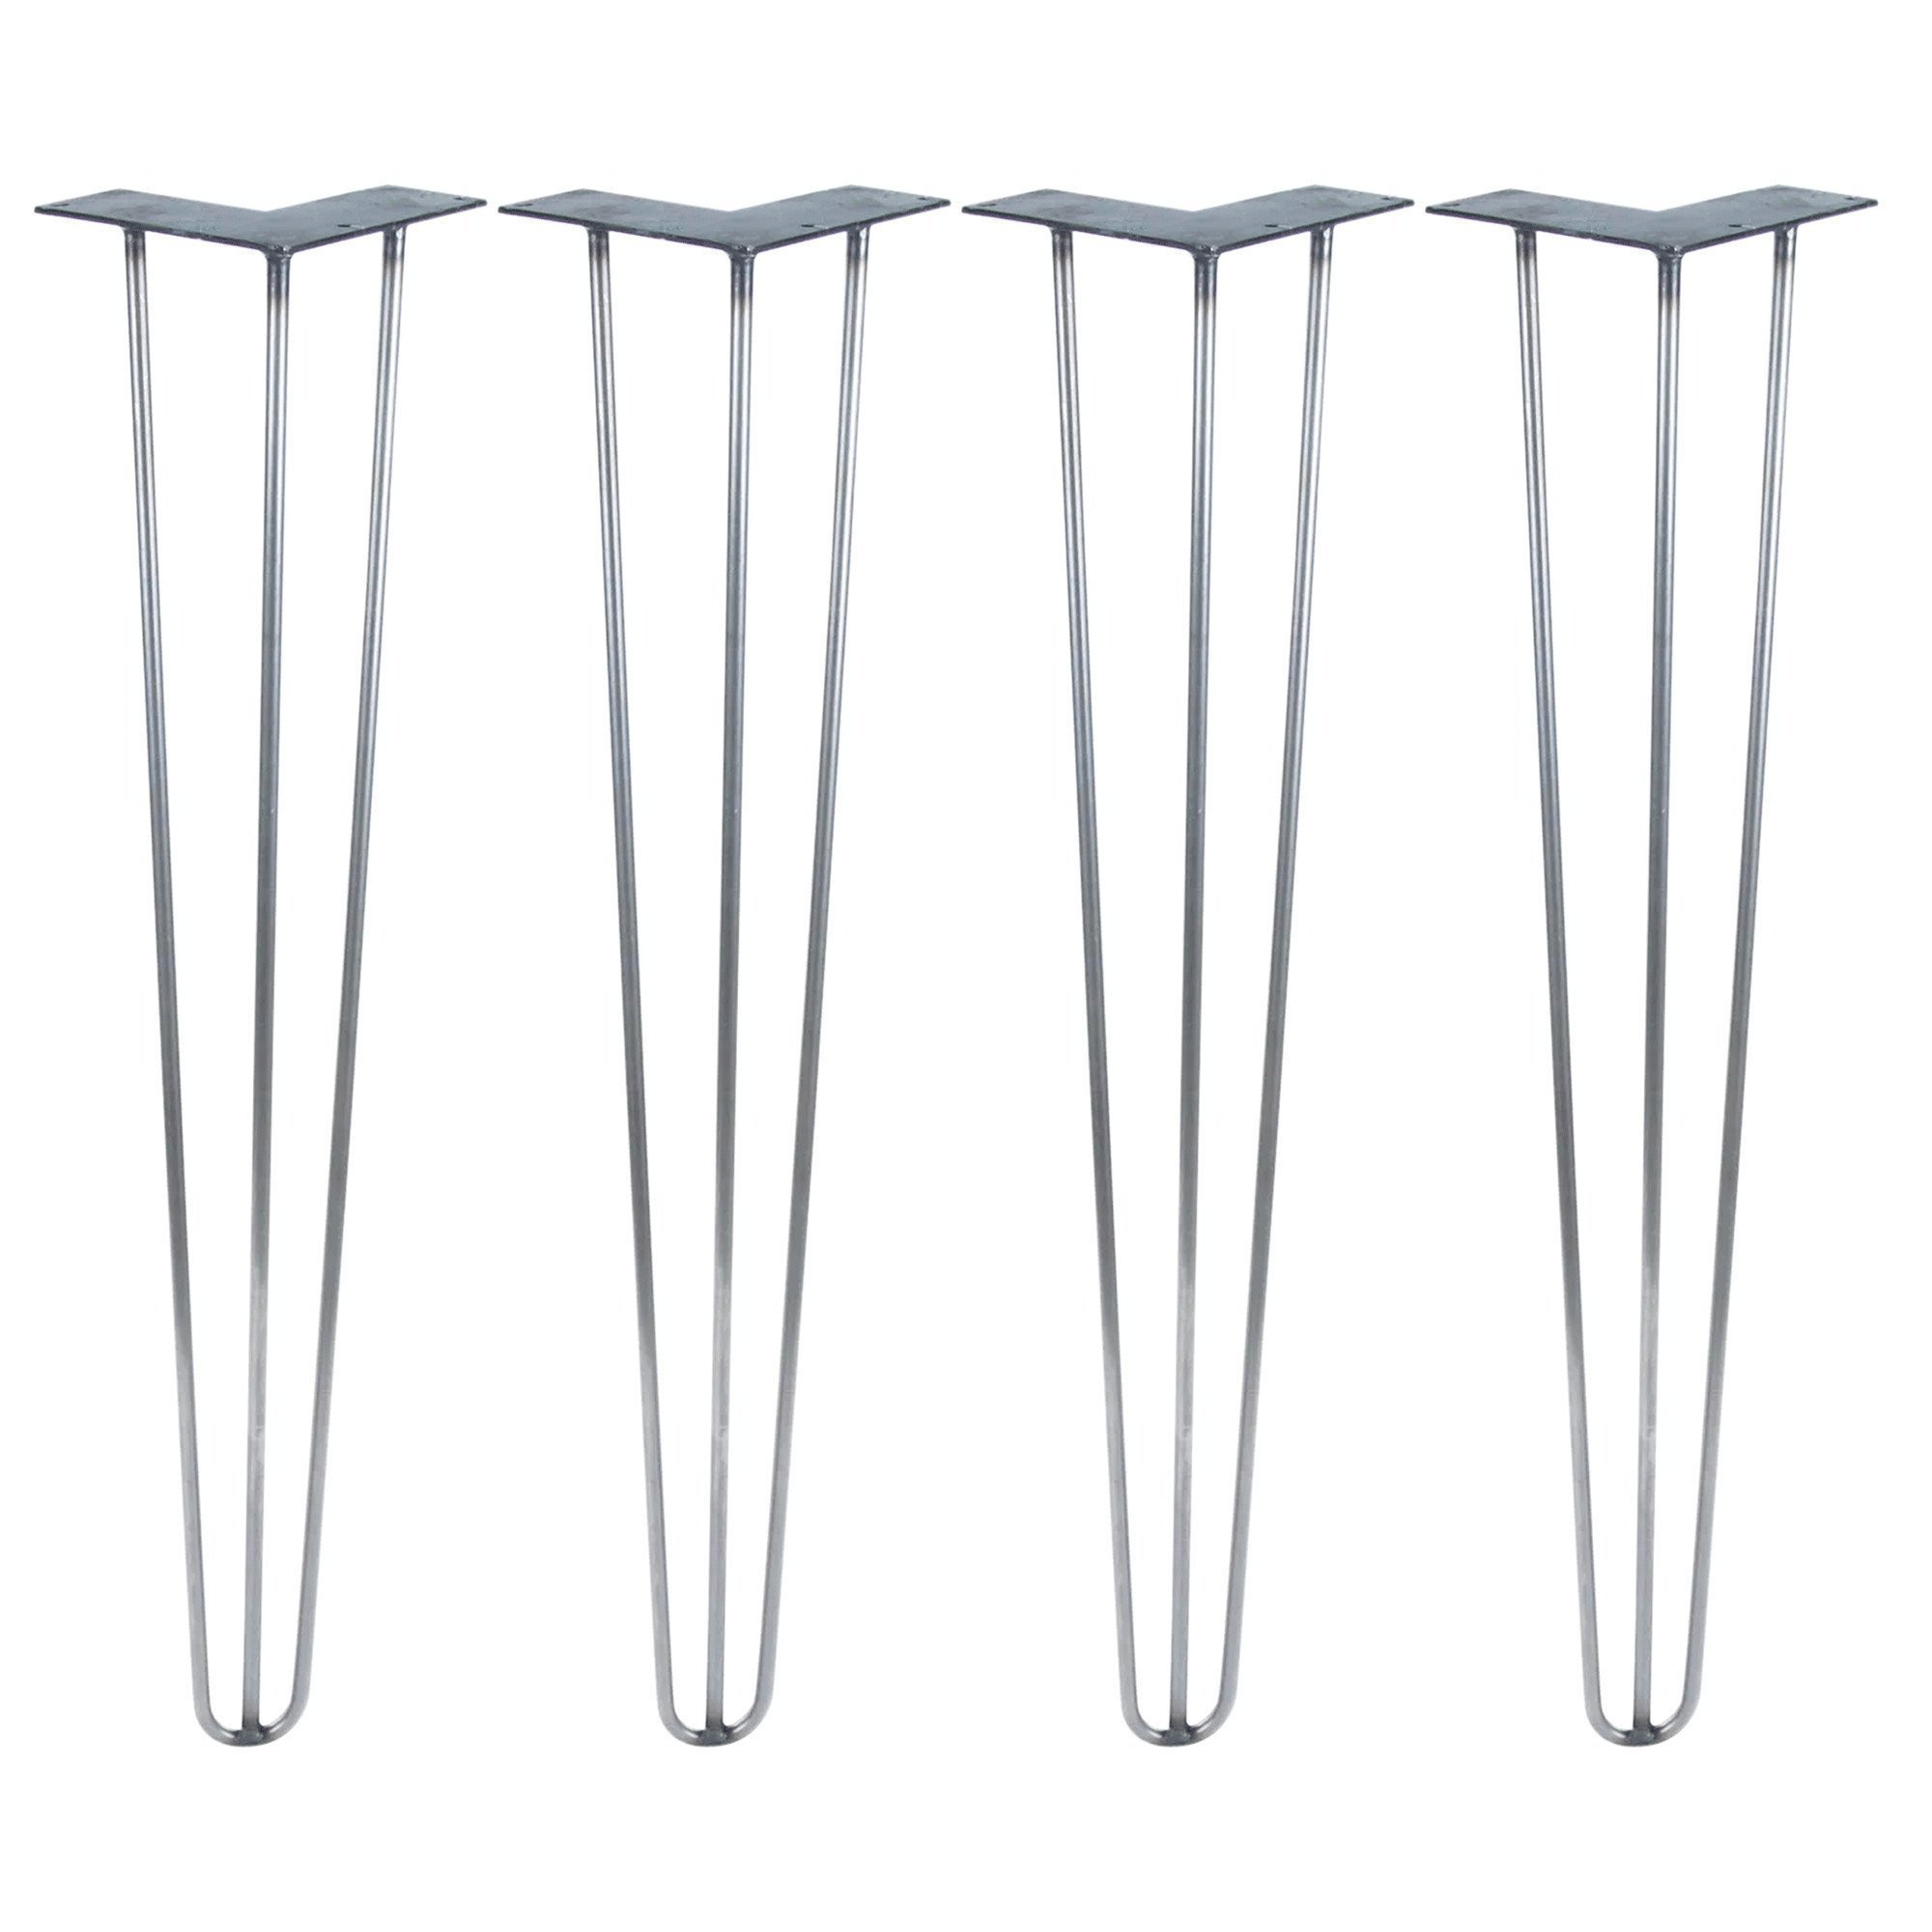 Hairpin Legs Set of 4 - Cold Rolled Steel - Raw and Color Available - Made in The USA (30'' Tall, 1/2'' Diameter - Raw Steel- Shipped as Set of 4 Legs)